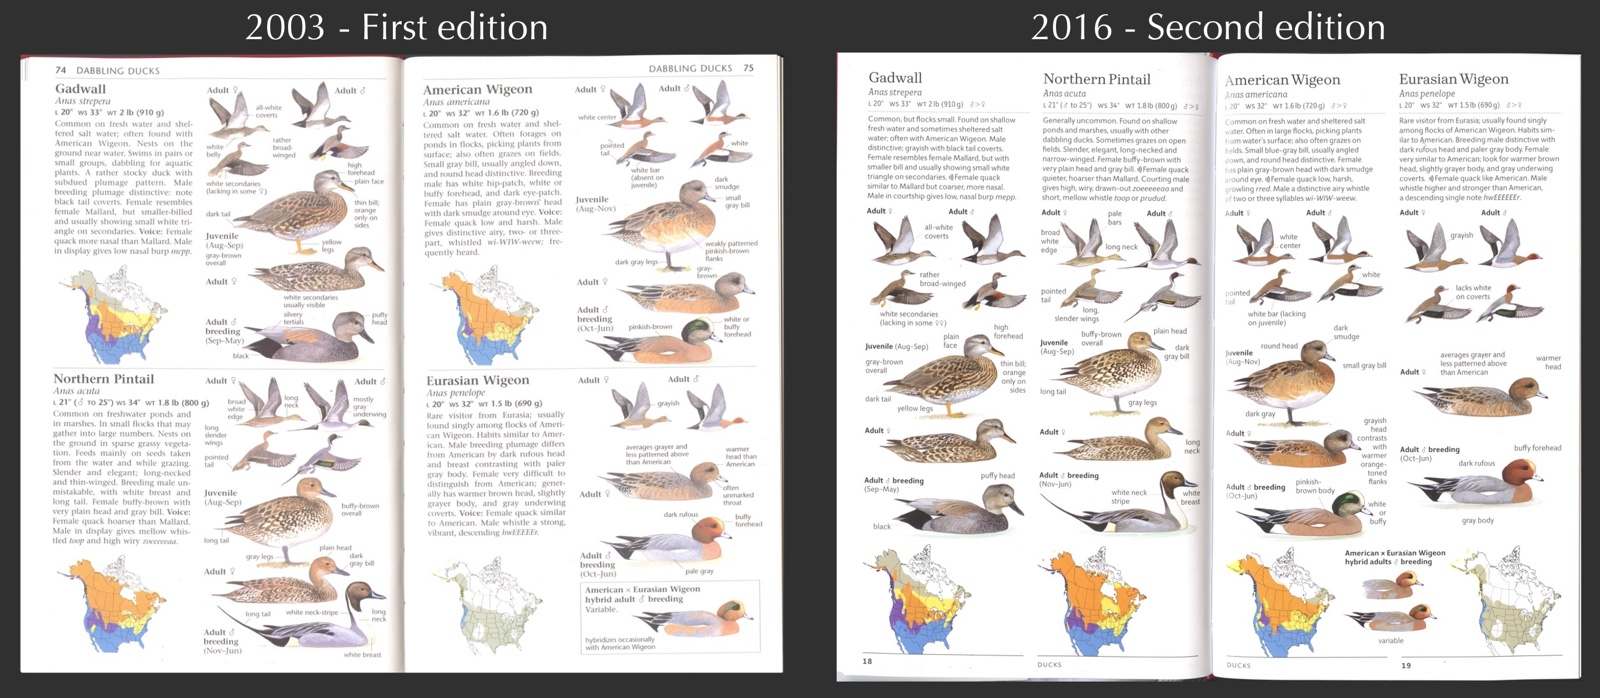 10,000 birds the sibley guide to birds, second edition: a review.